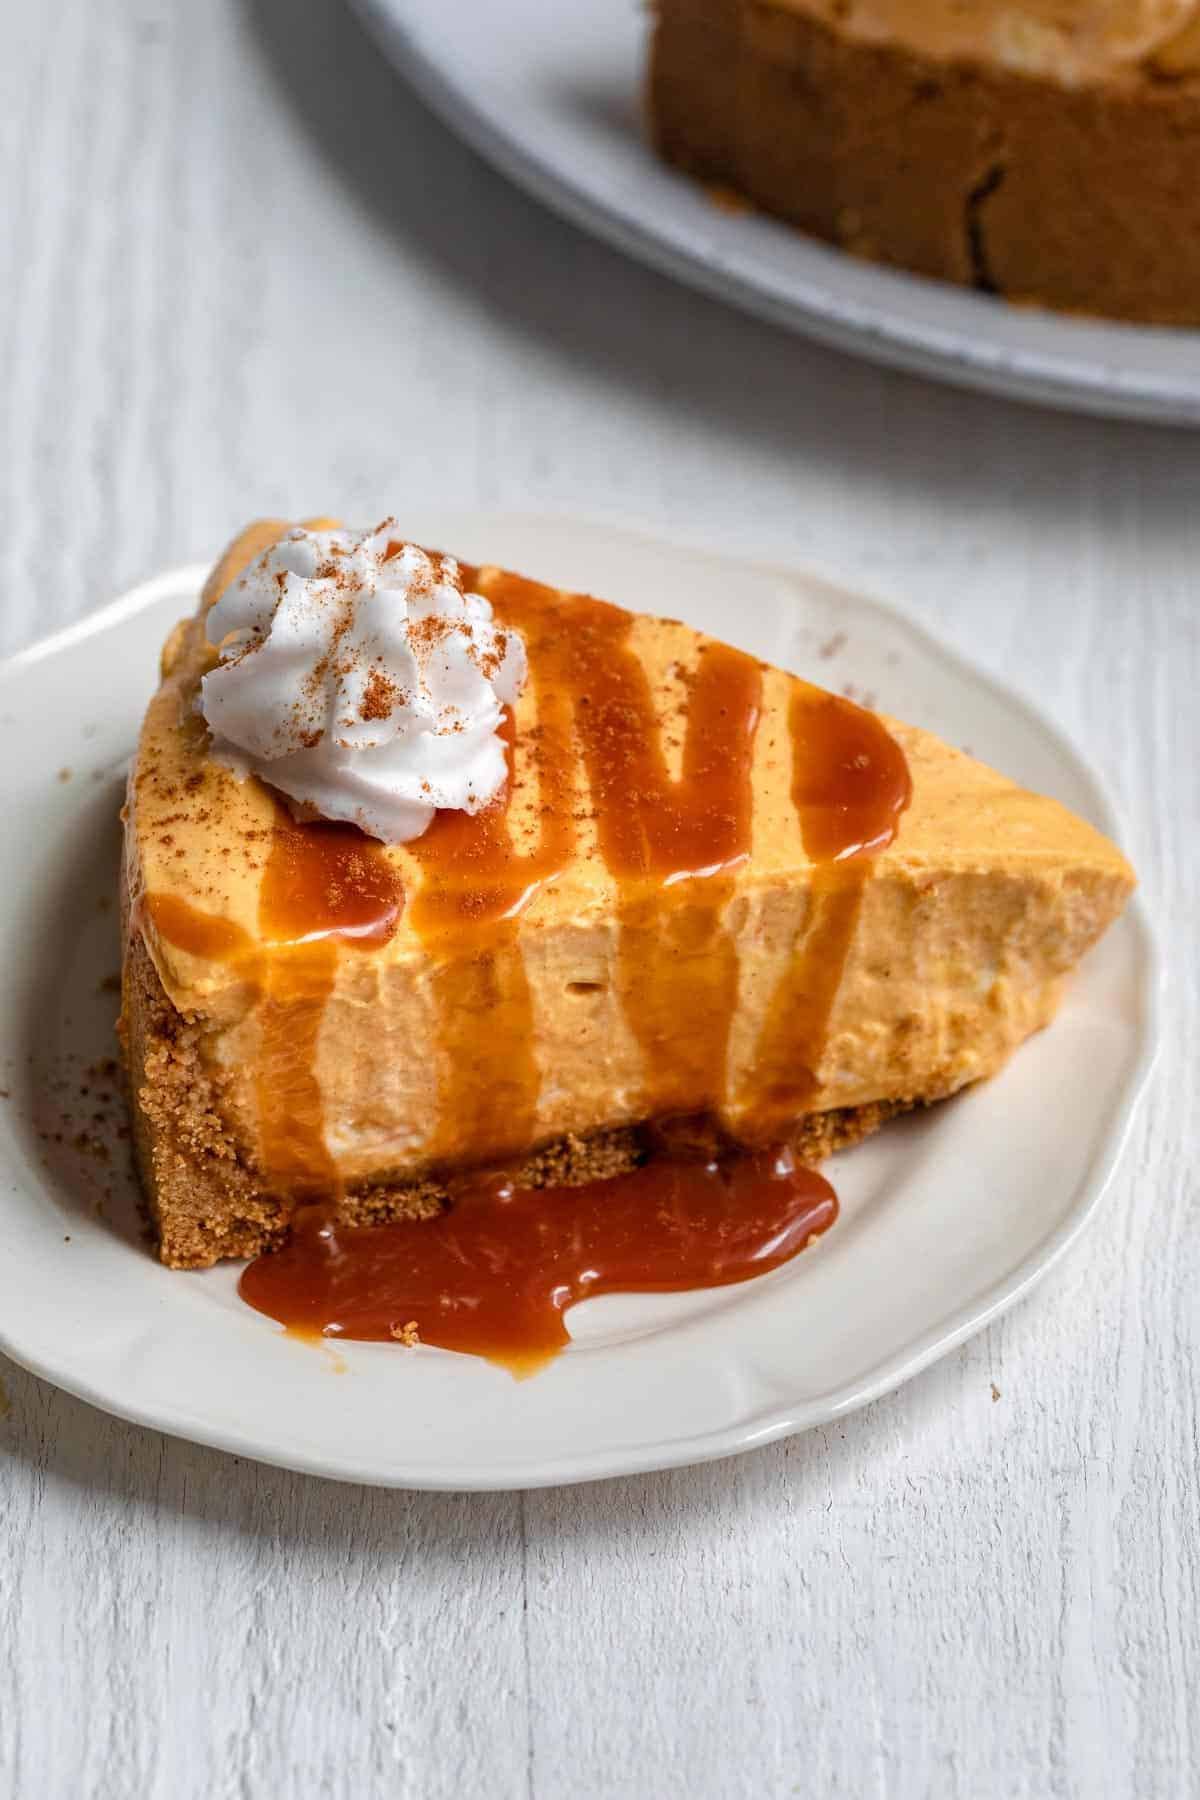 Slice of no bake pumpkin cheese with caramel on top and whipped cream